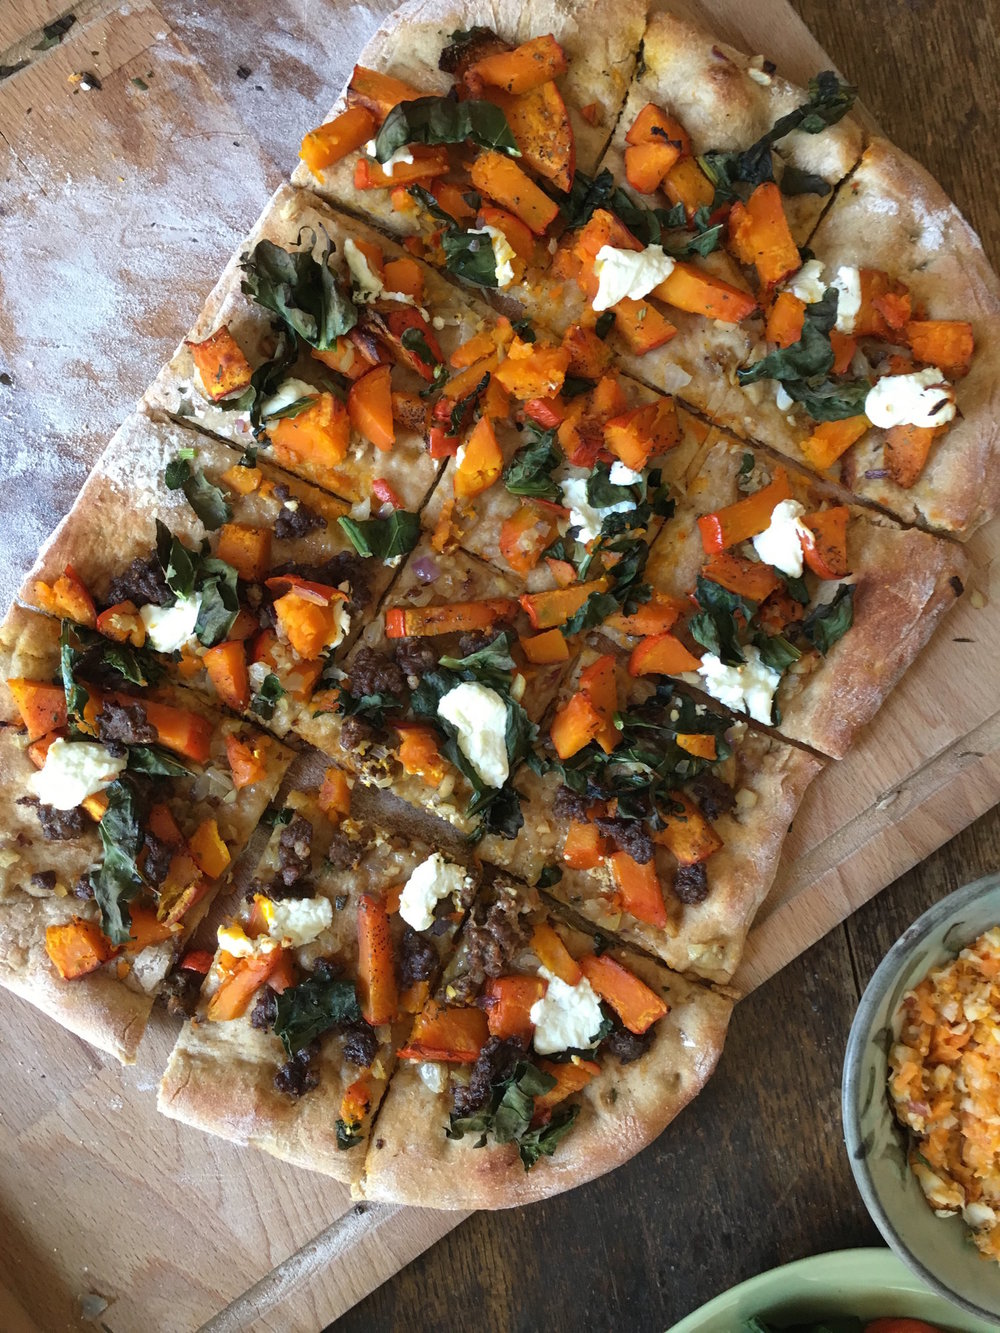 Winter Squash Pizza with Chevre and Greens